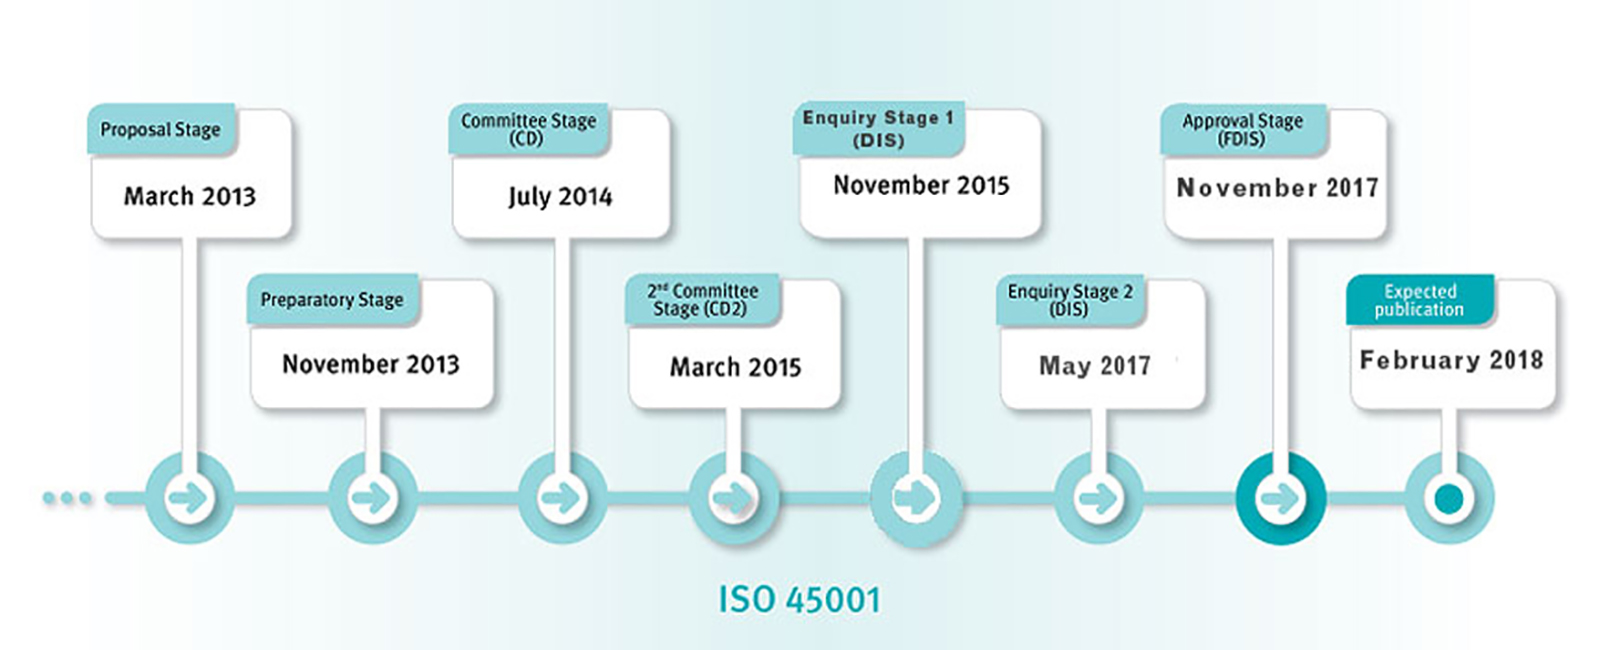 OHSAS 18001 - Health & Safety Management Systems